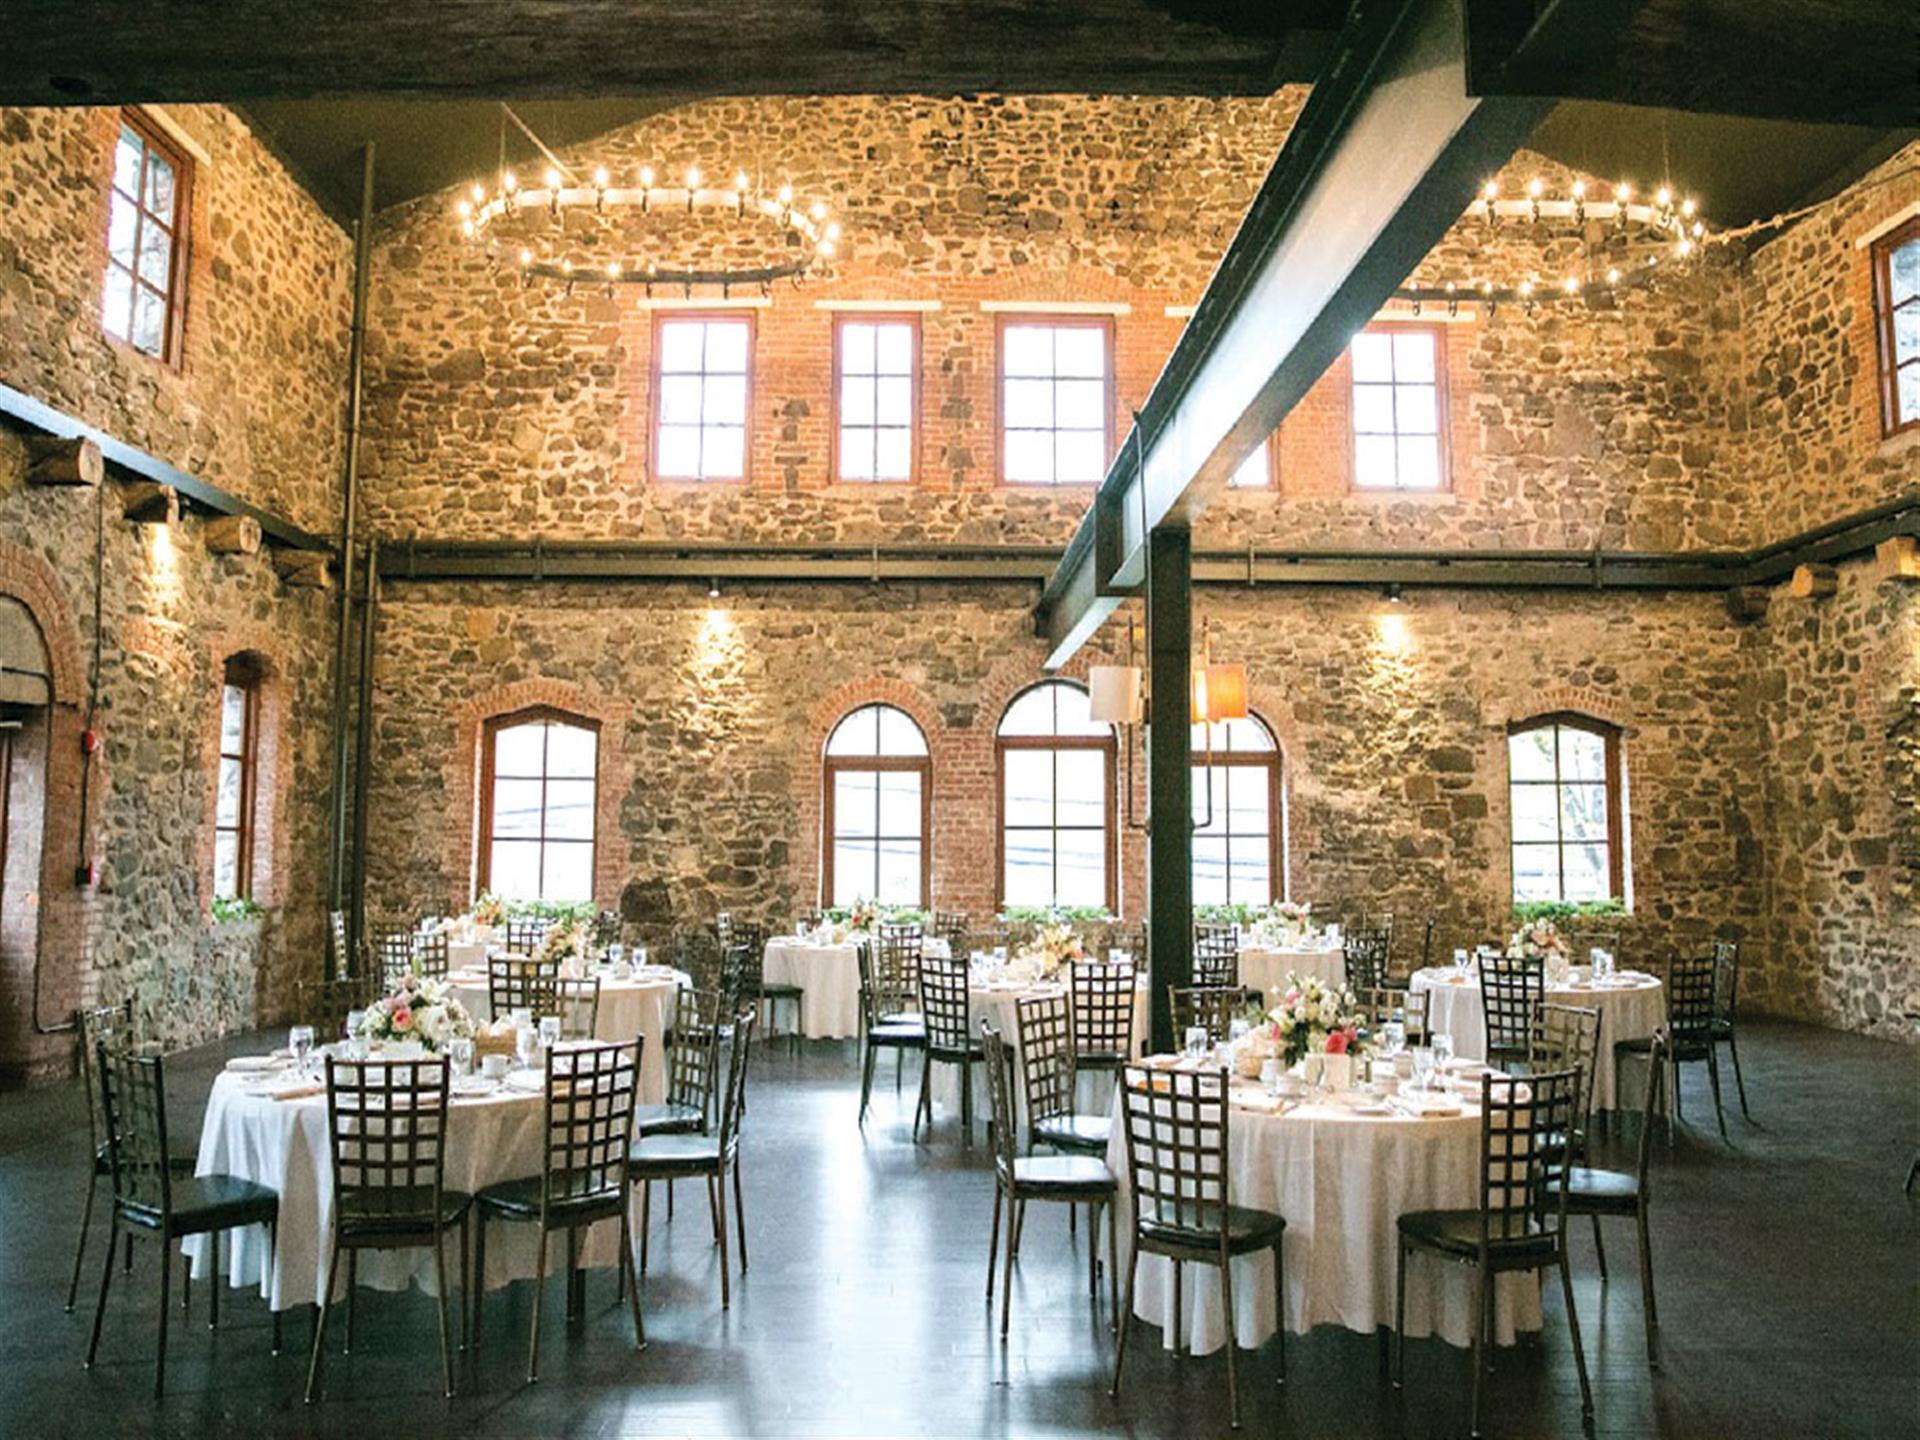 interior of brotherhood winery showcasing large chandeliers and stone walls